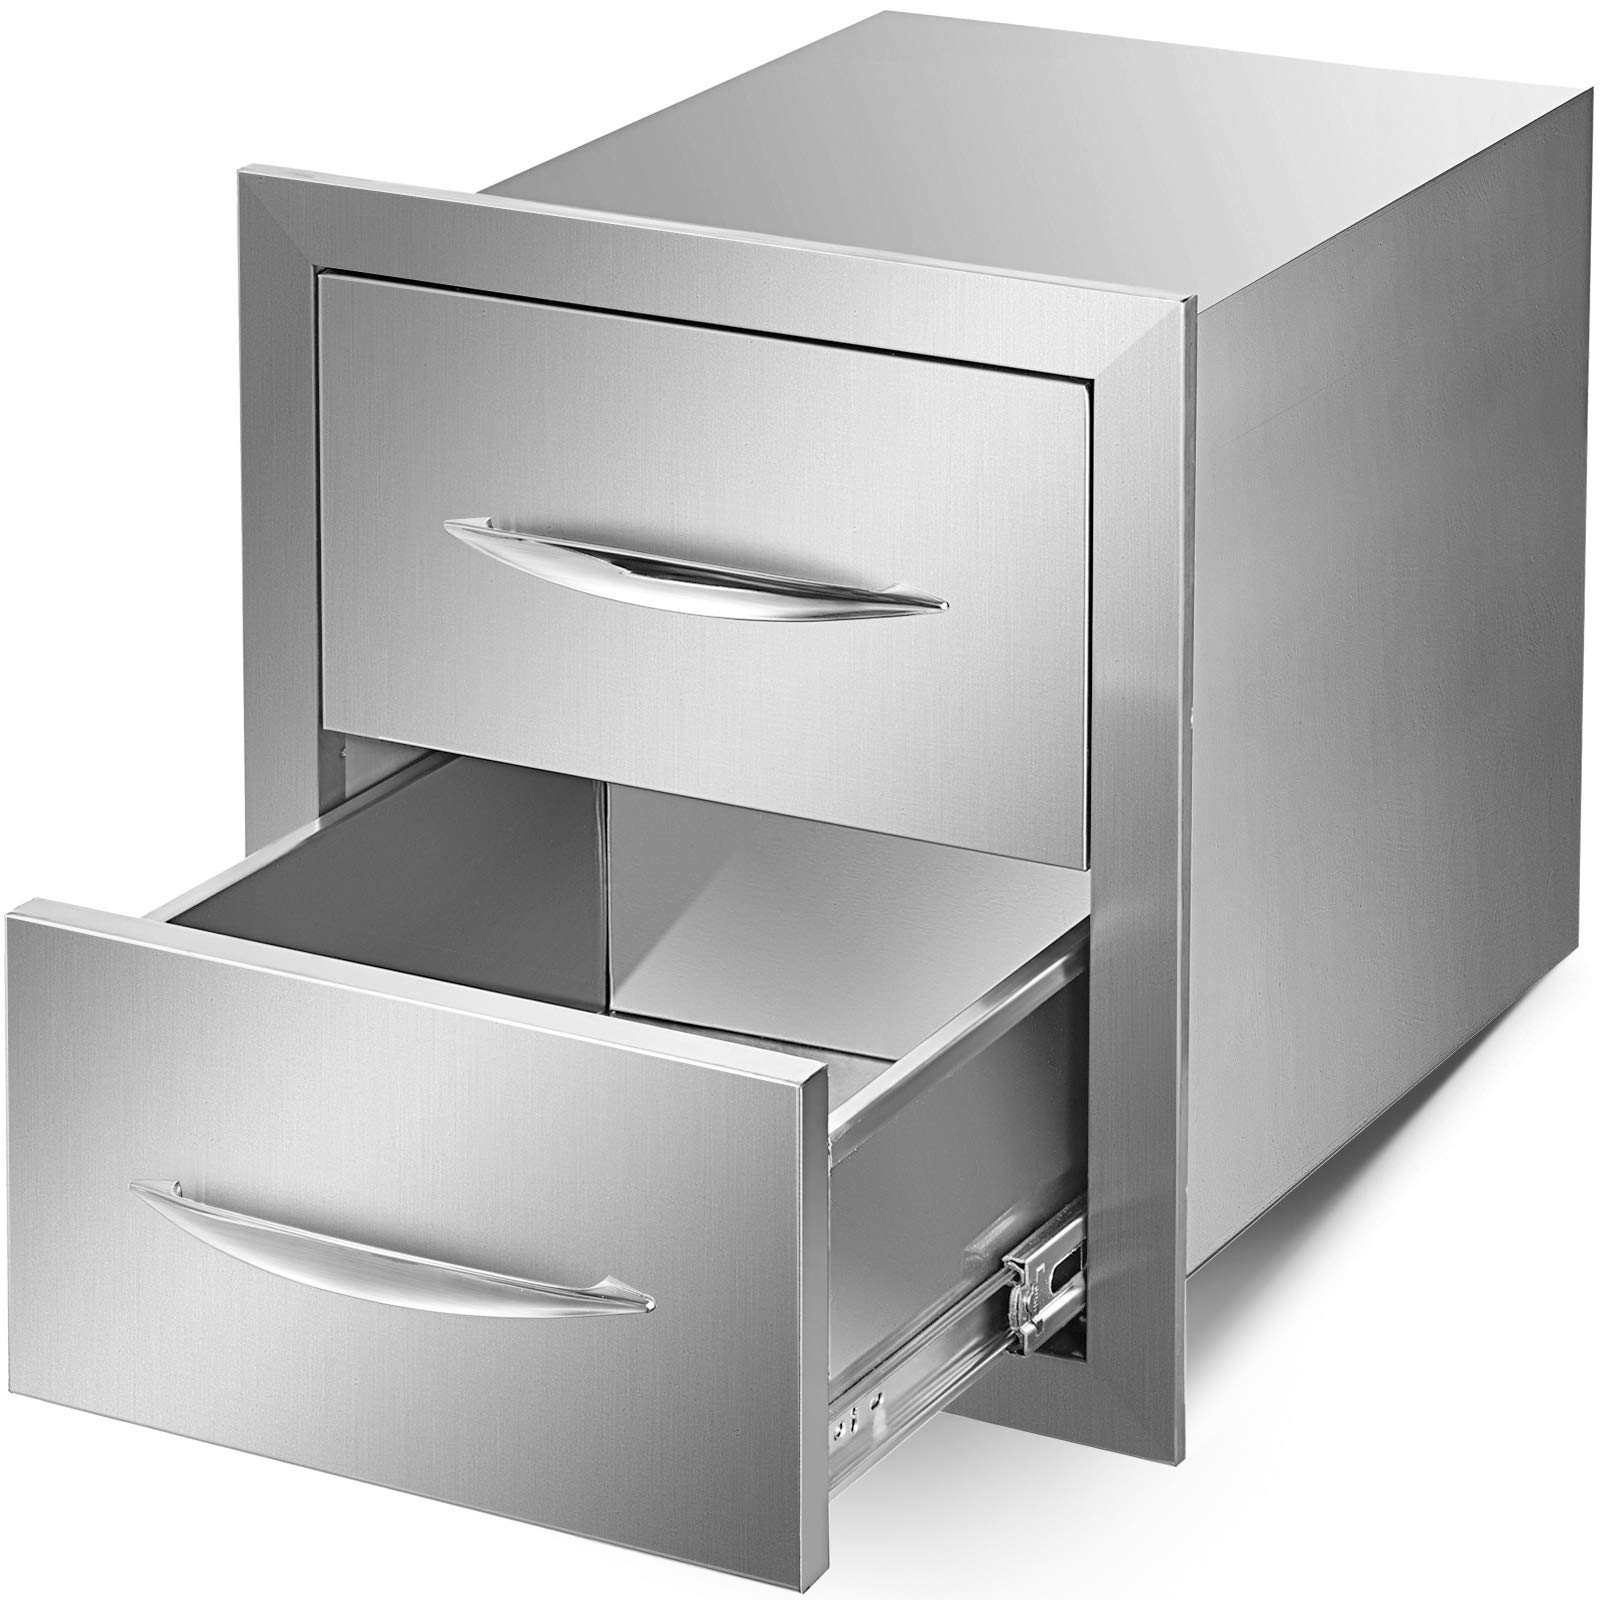 Mophorn 14''x16'' Outdoor Kitchen Drawer Stainless Steel Double Access Drawer BBQ Storage with Chrome Handle Flush Mount Sliver